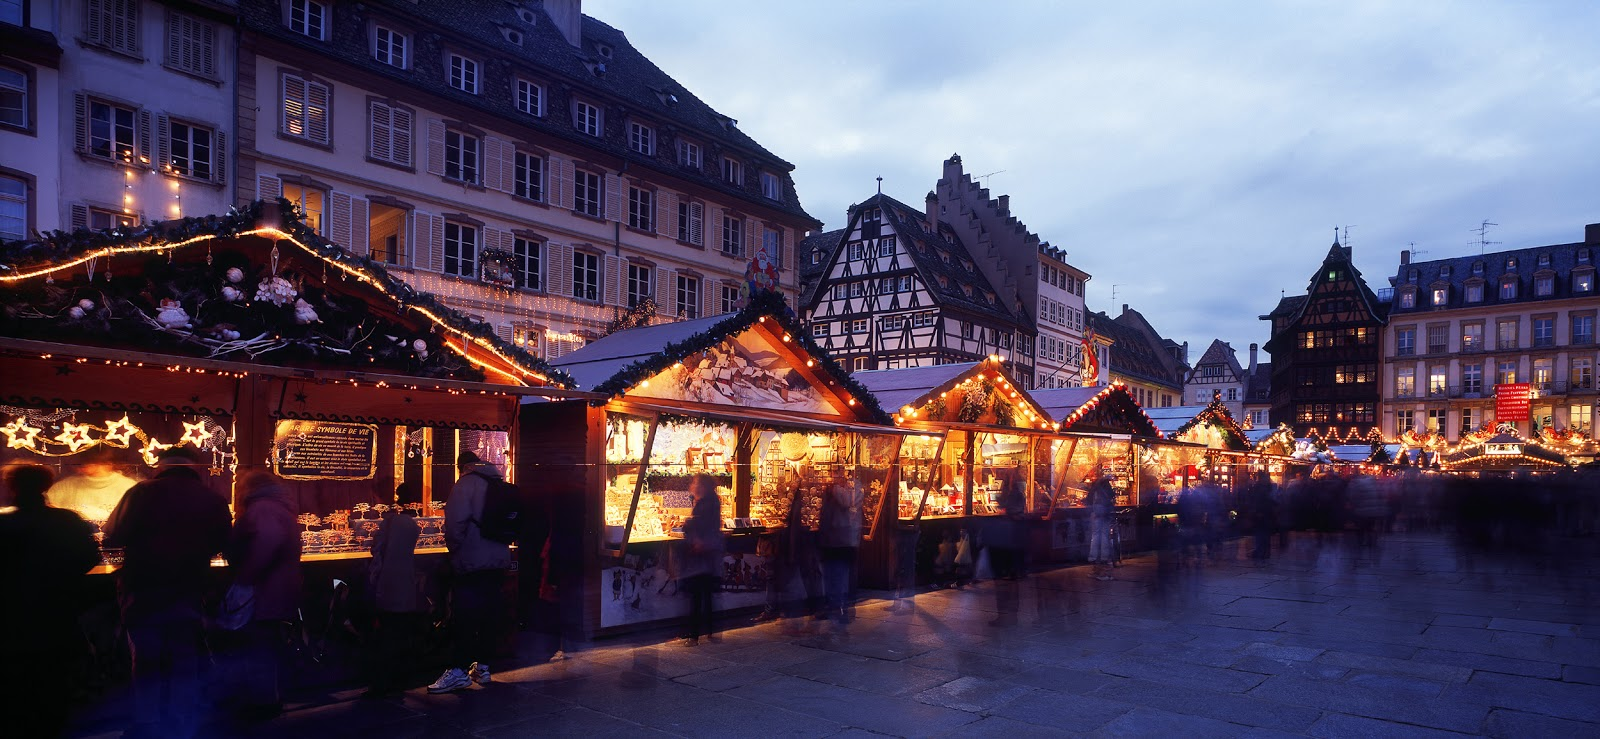 Strasbourg's Place de la Cathédrale in France is lined with market chalets brimming with gifts and tasty treats.